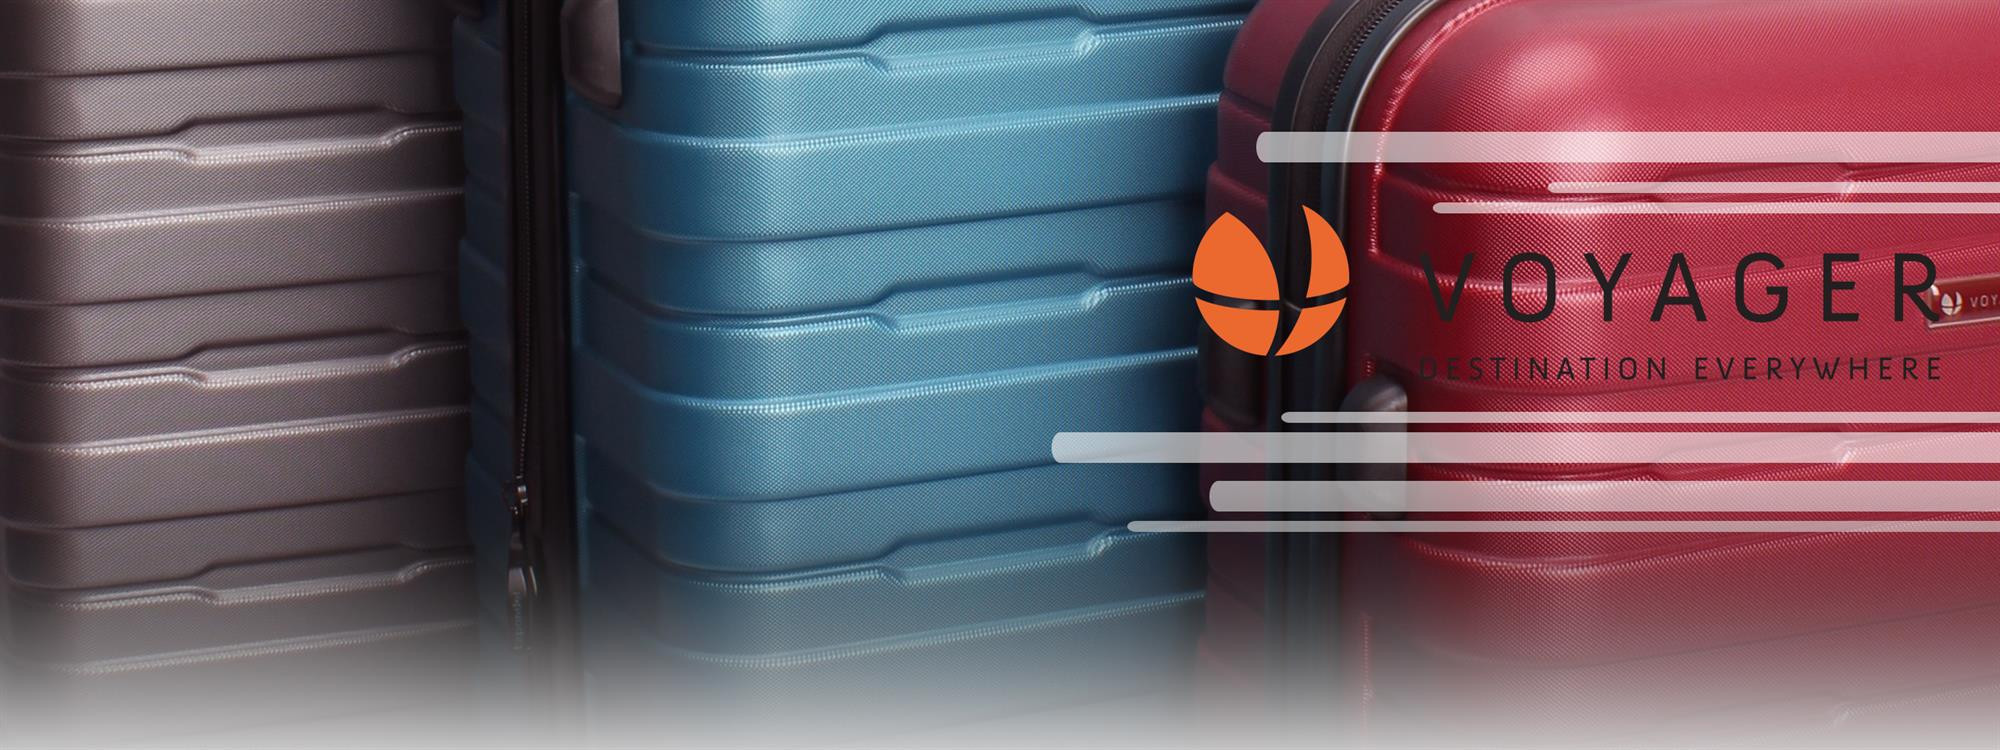 Netball New Zealand have joined the All Blacks in agreeing a sponsorship deal with Voyager Luggage ©Voyager Luggage